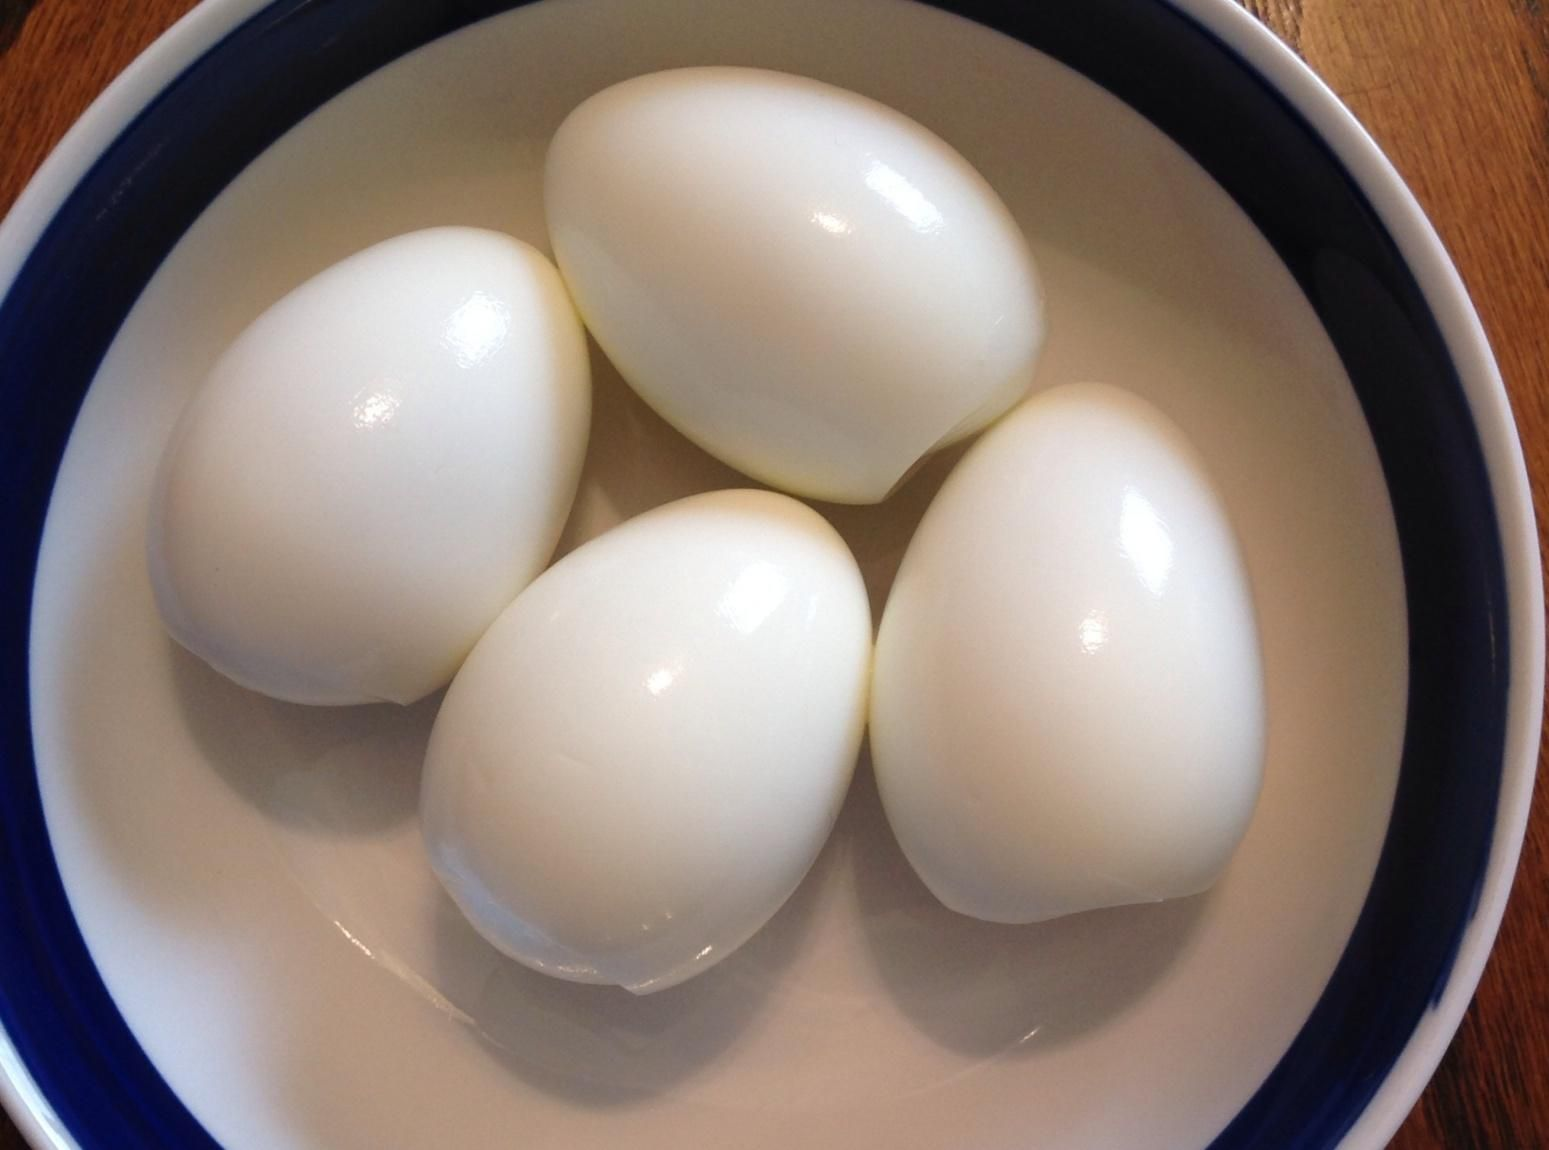 Technique: Hard boiled eggs, and how to peel them clean ...